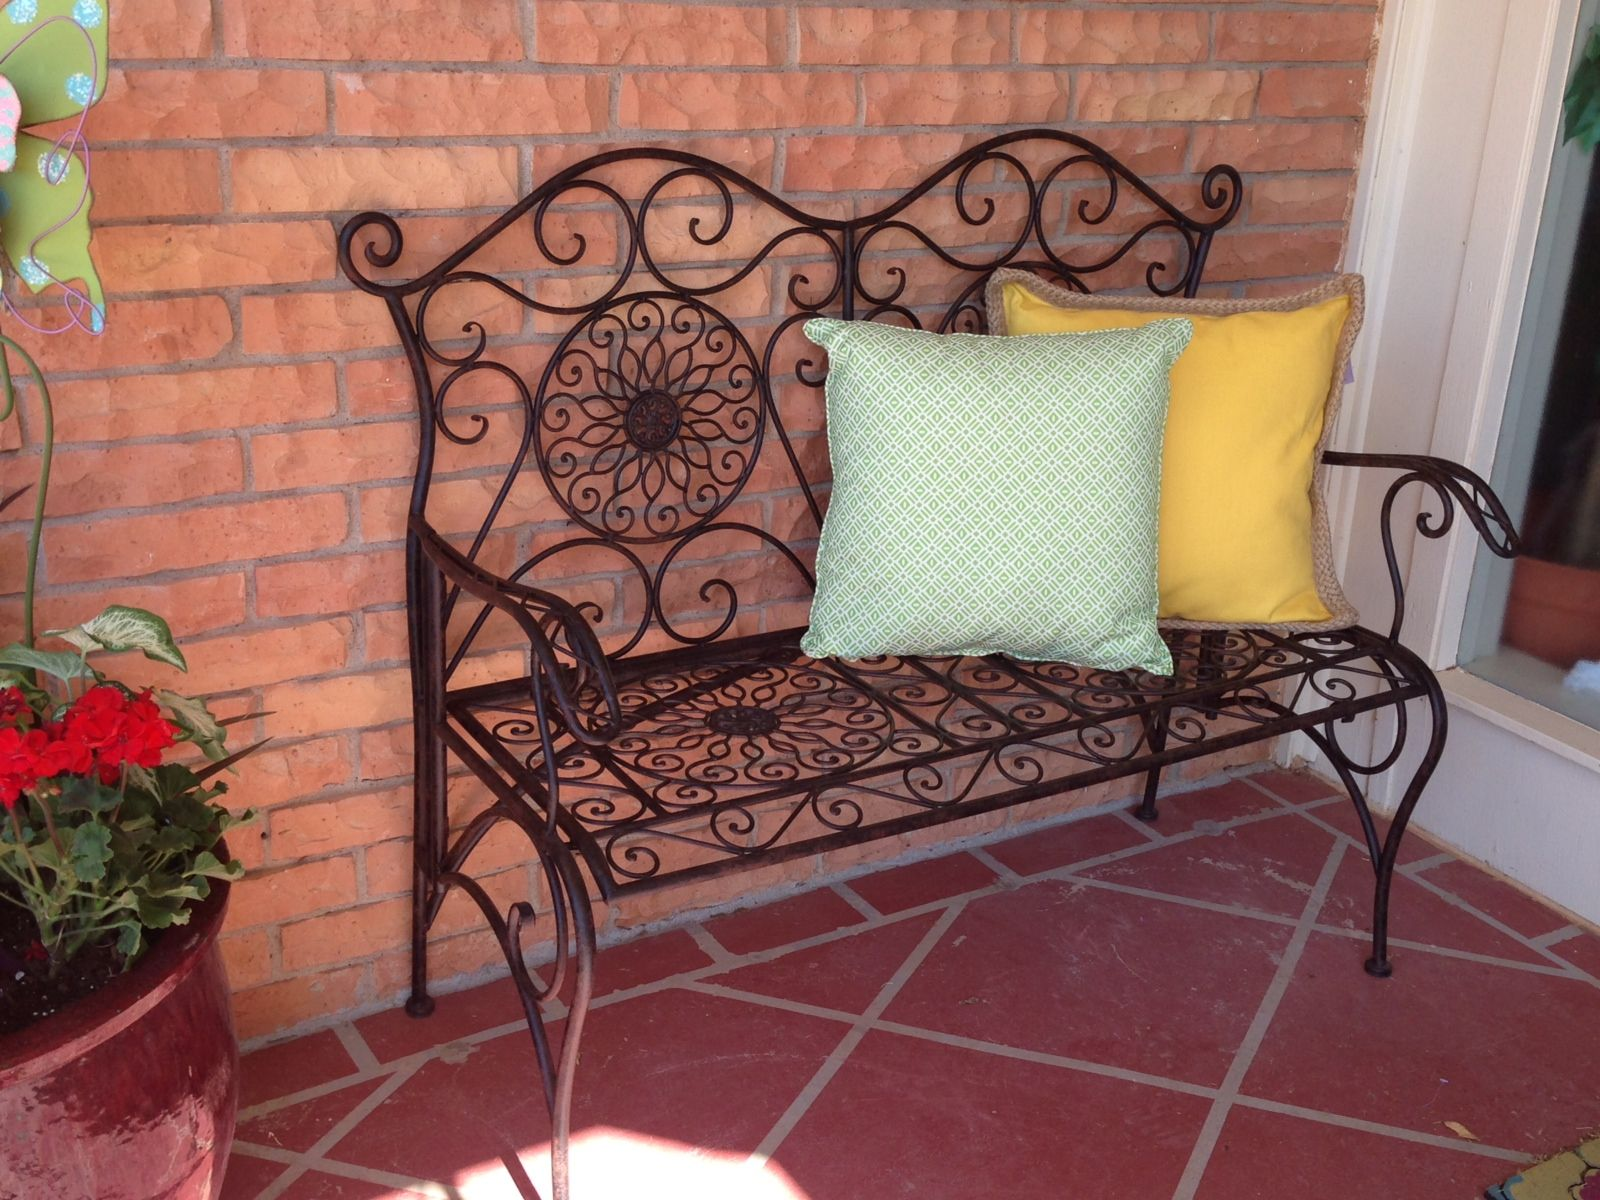 Hobby Lobby Benches Iron Bench Adds Seating And